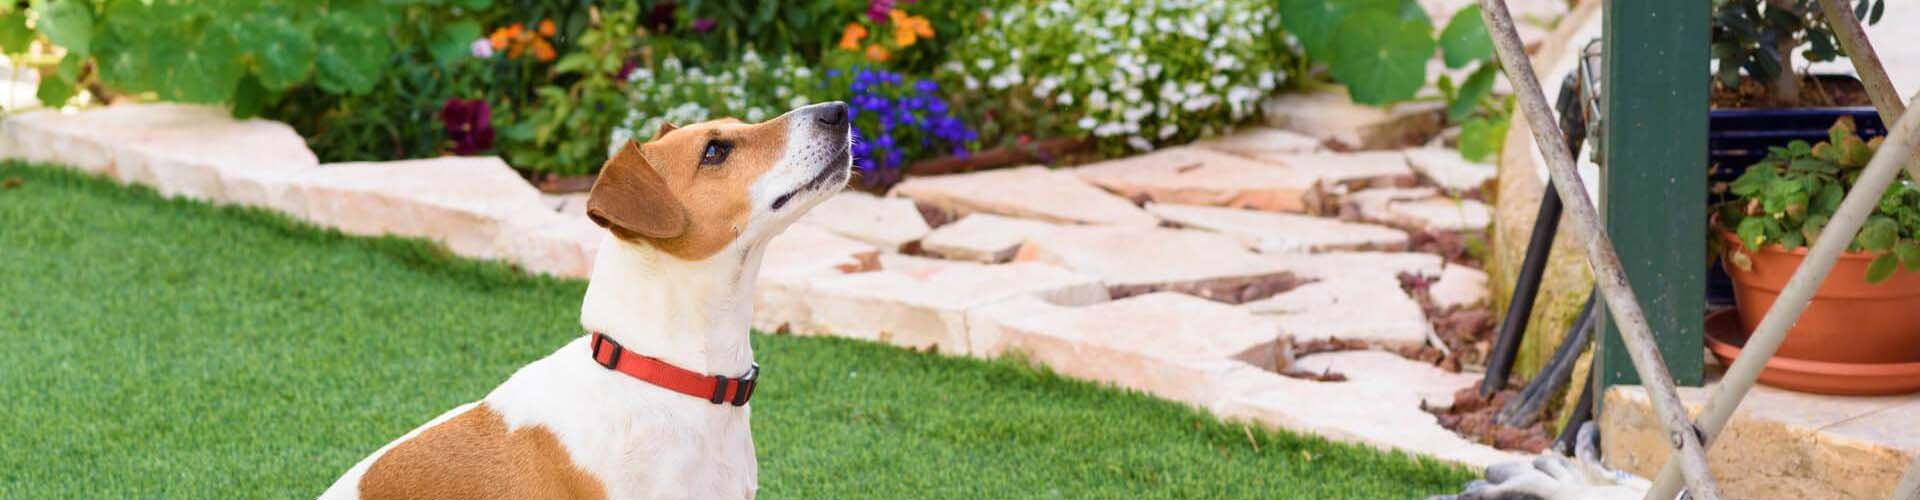 BBQ Food & Pet Safety Tips